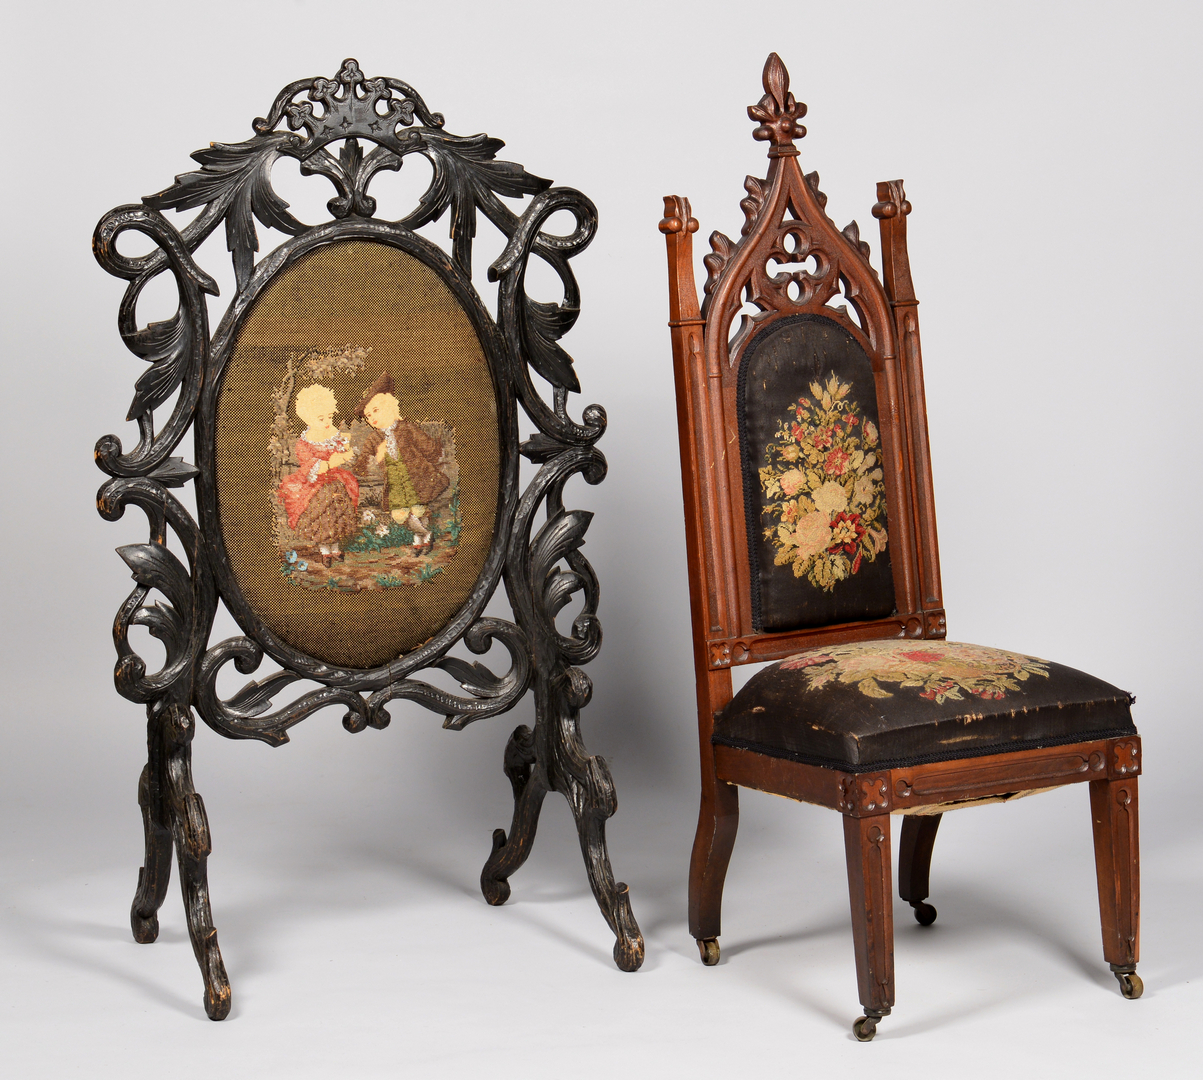 Gothic furniture chair - Gothic Furniture Chair 2